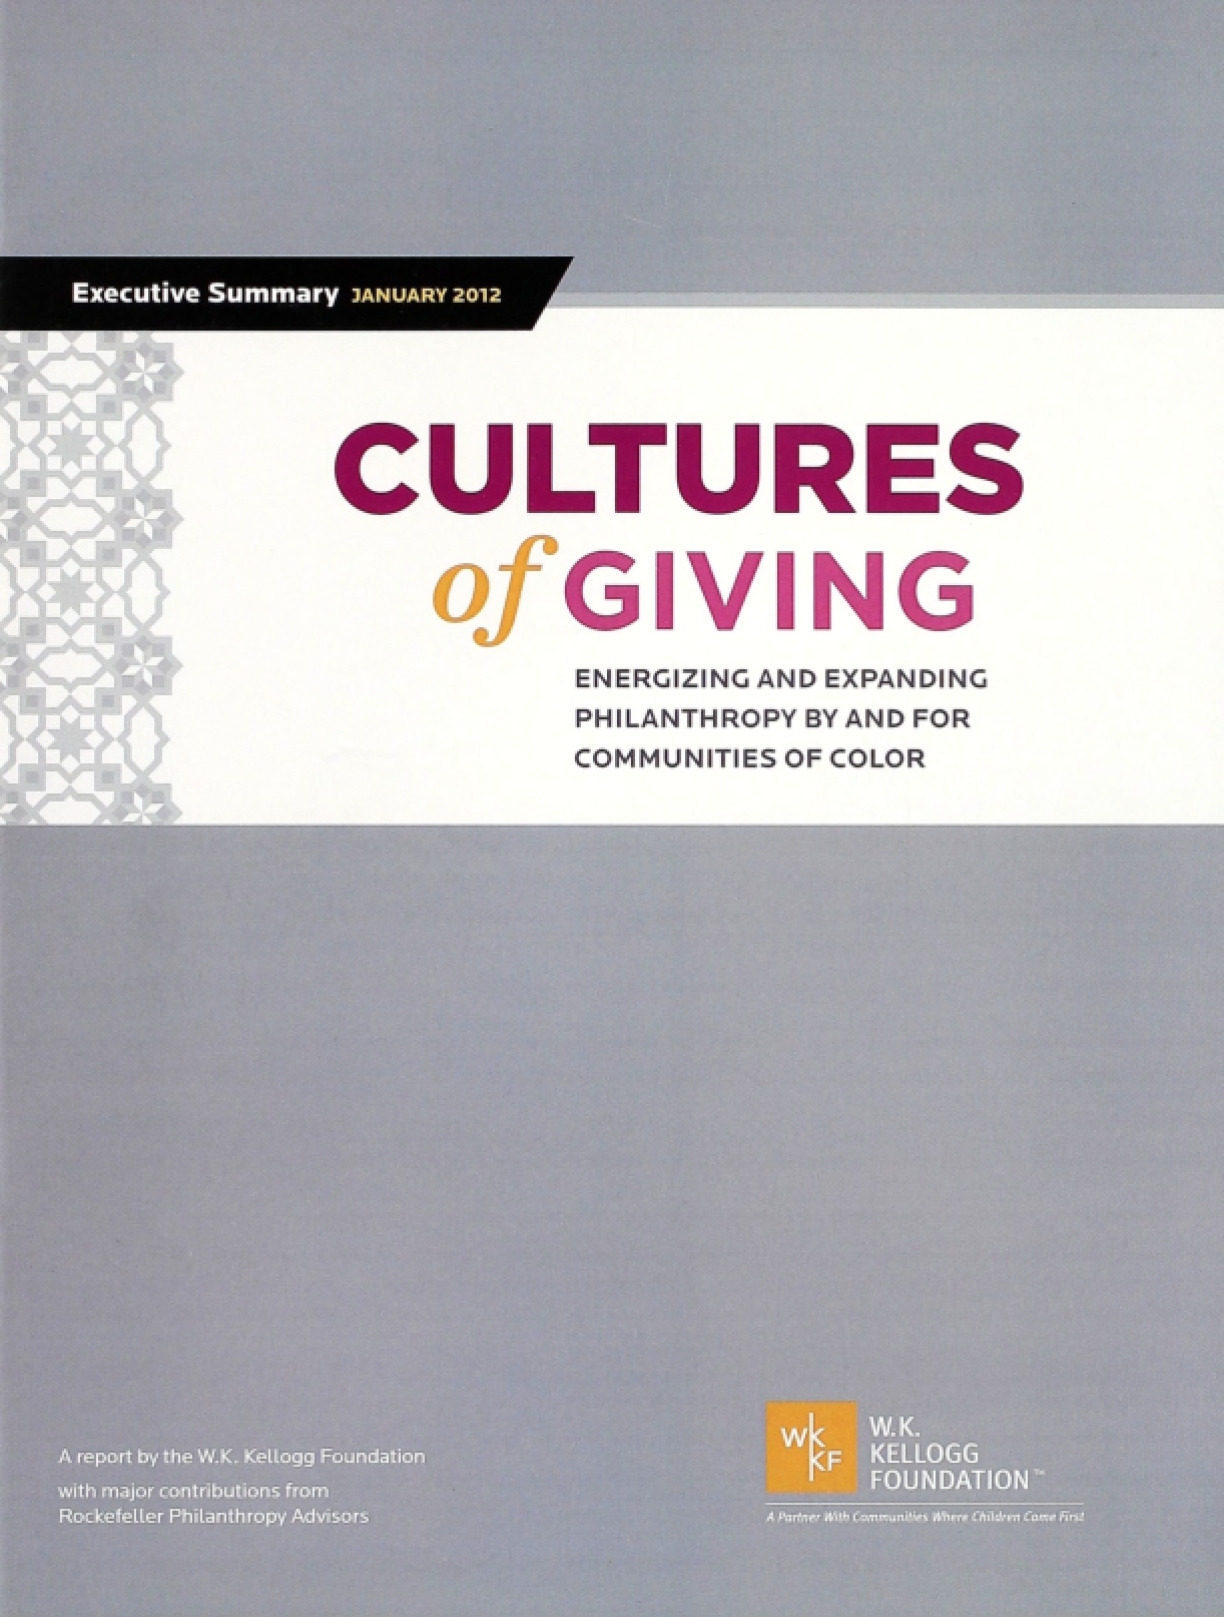 Cultures of Giving: Energizing and Expanding Philanthropy by and for Communities of Color (Execuive Summary)